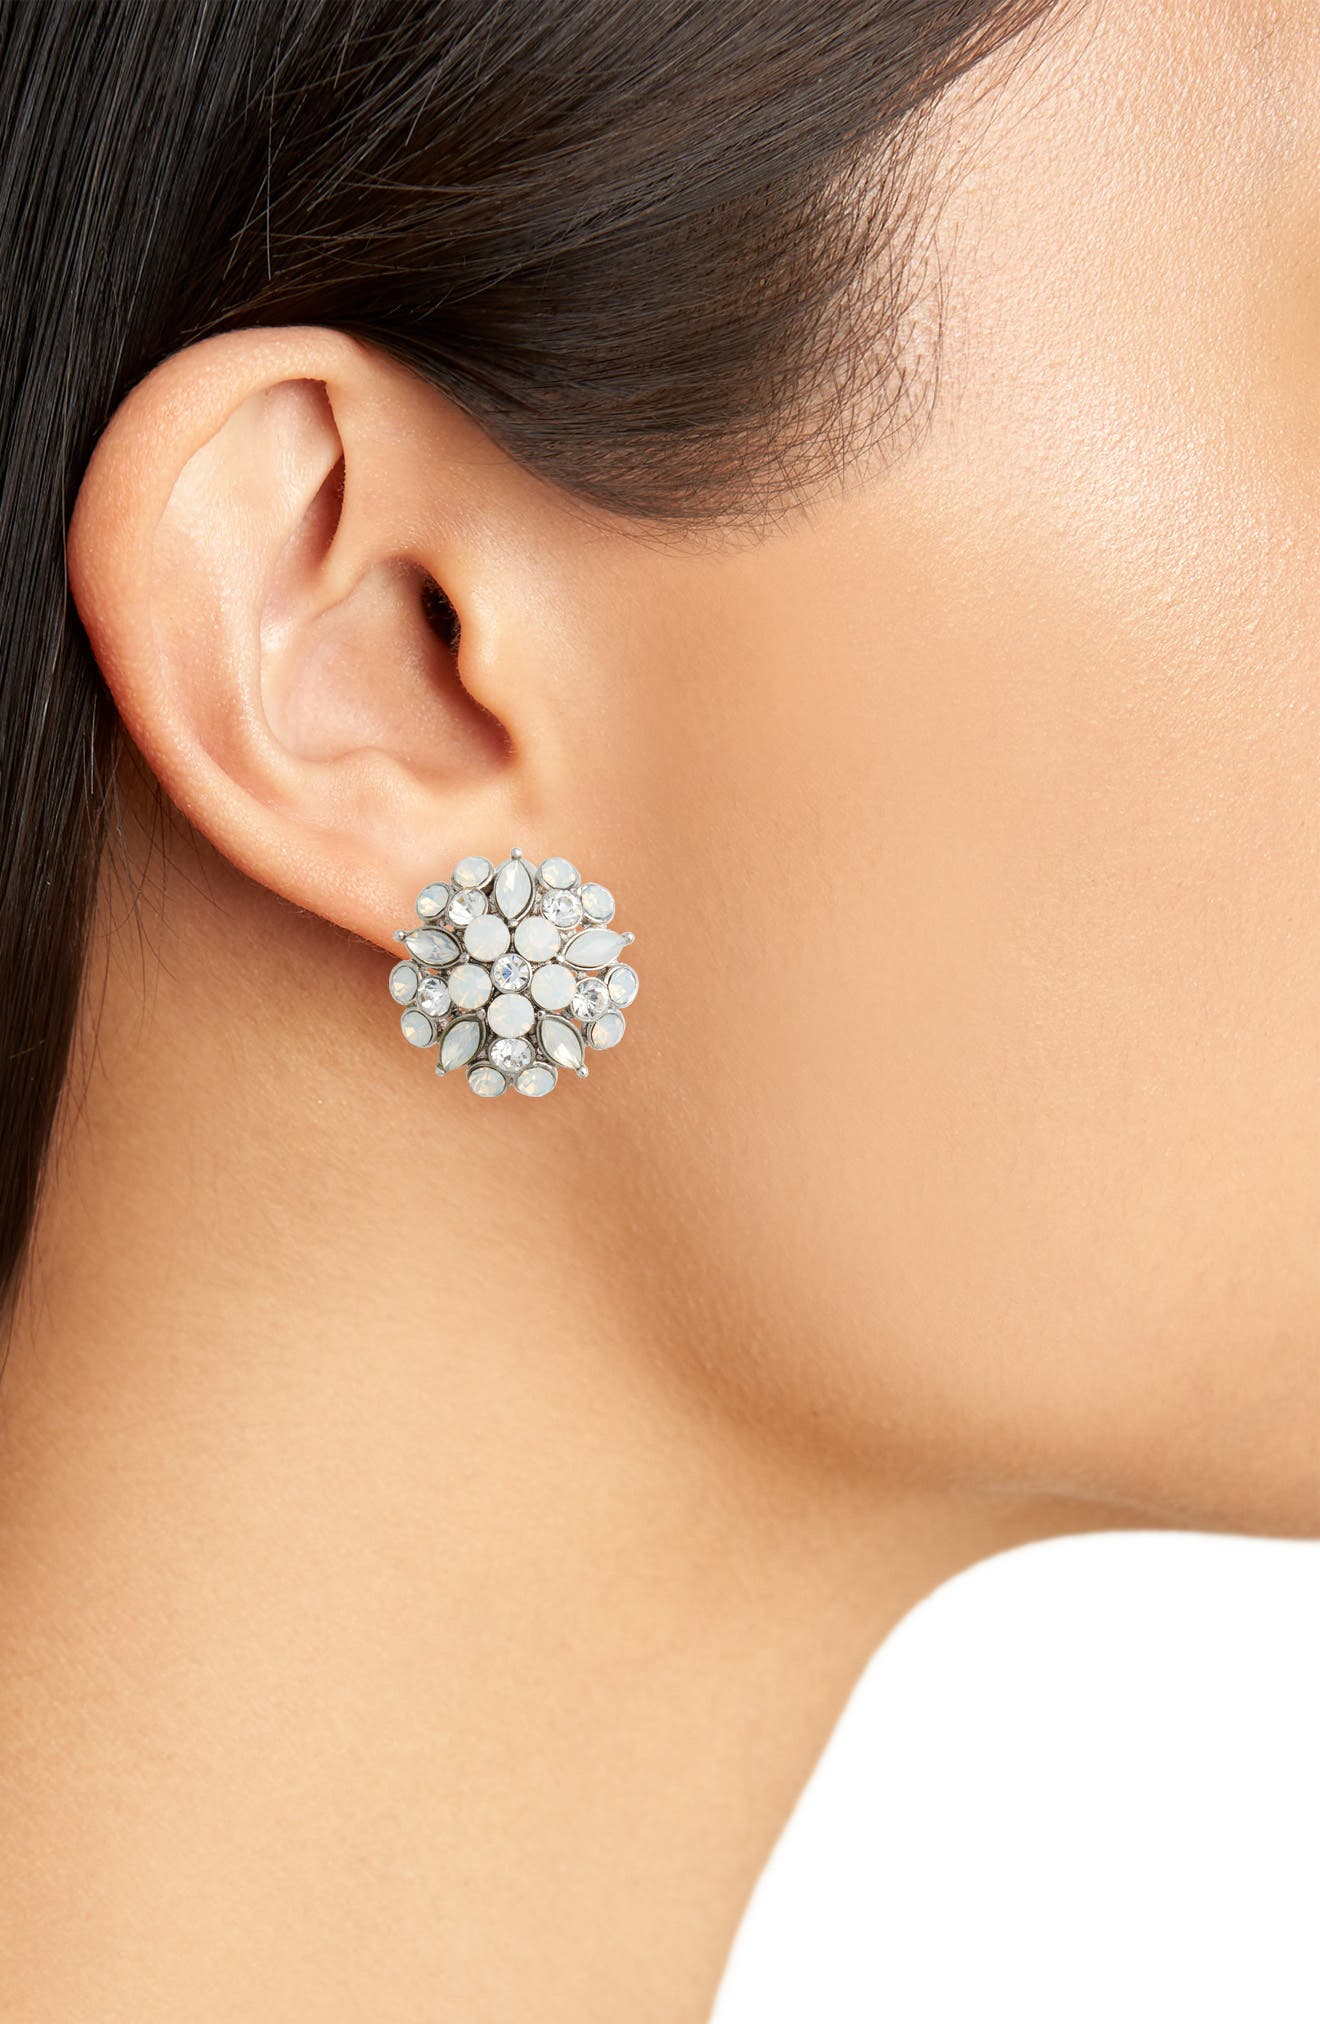 Floral Stud Earrings,                             Alternate thumbnail 2, color,                             Silver/ Opal/ White Crystal